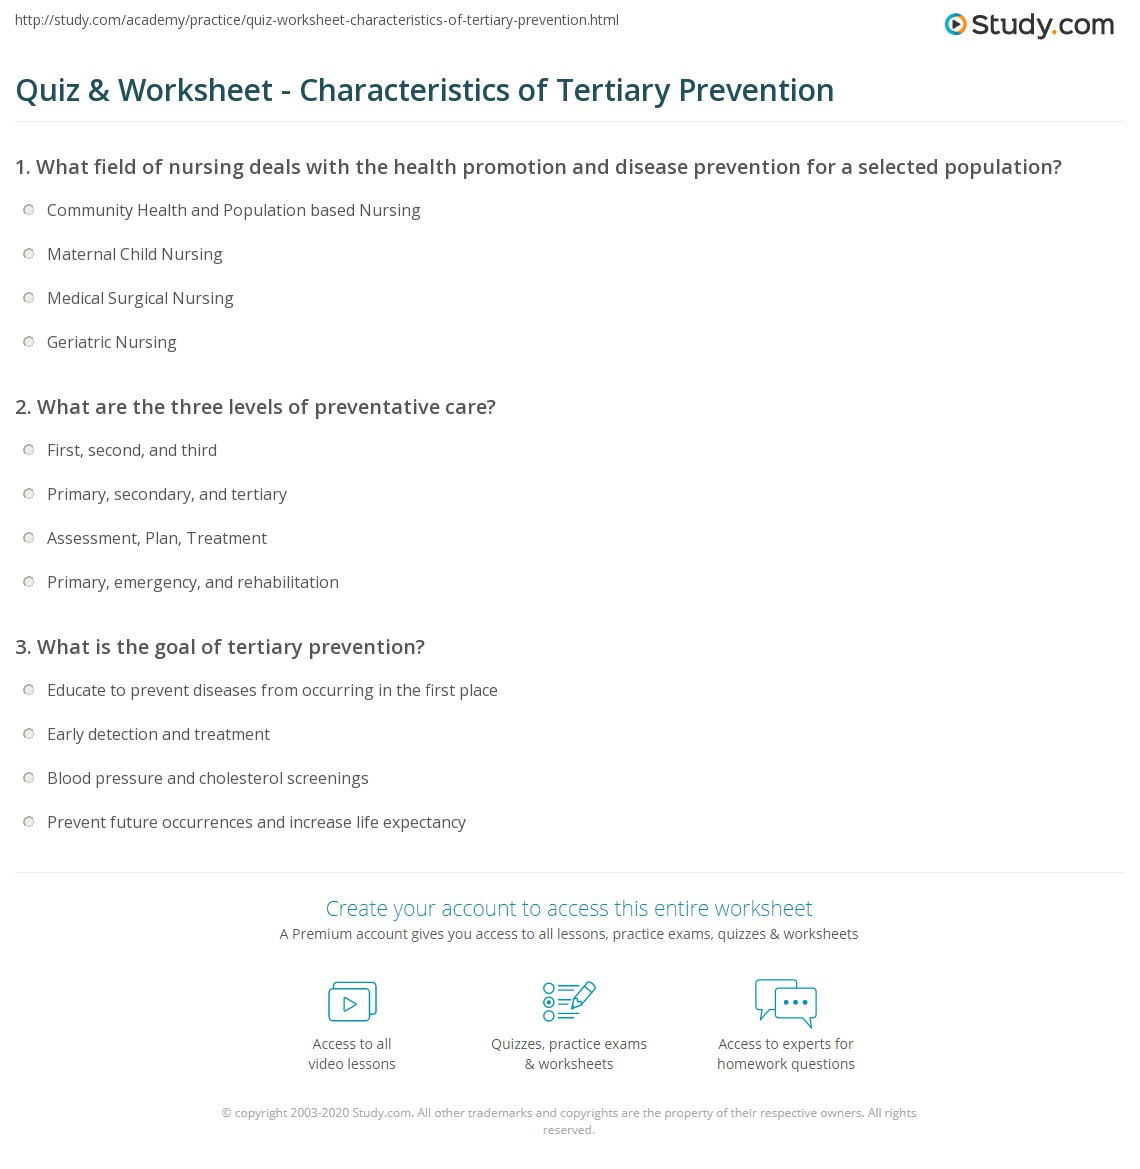 quiz & worksheet - characteristics of tertiary prevention | study, Human Body